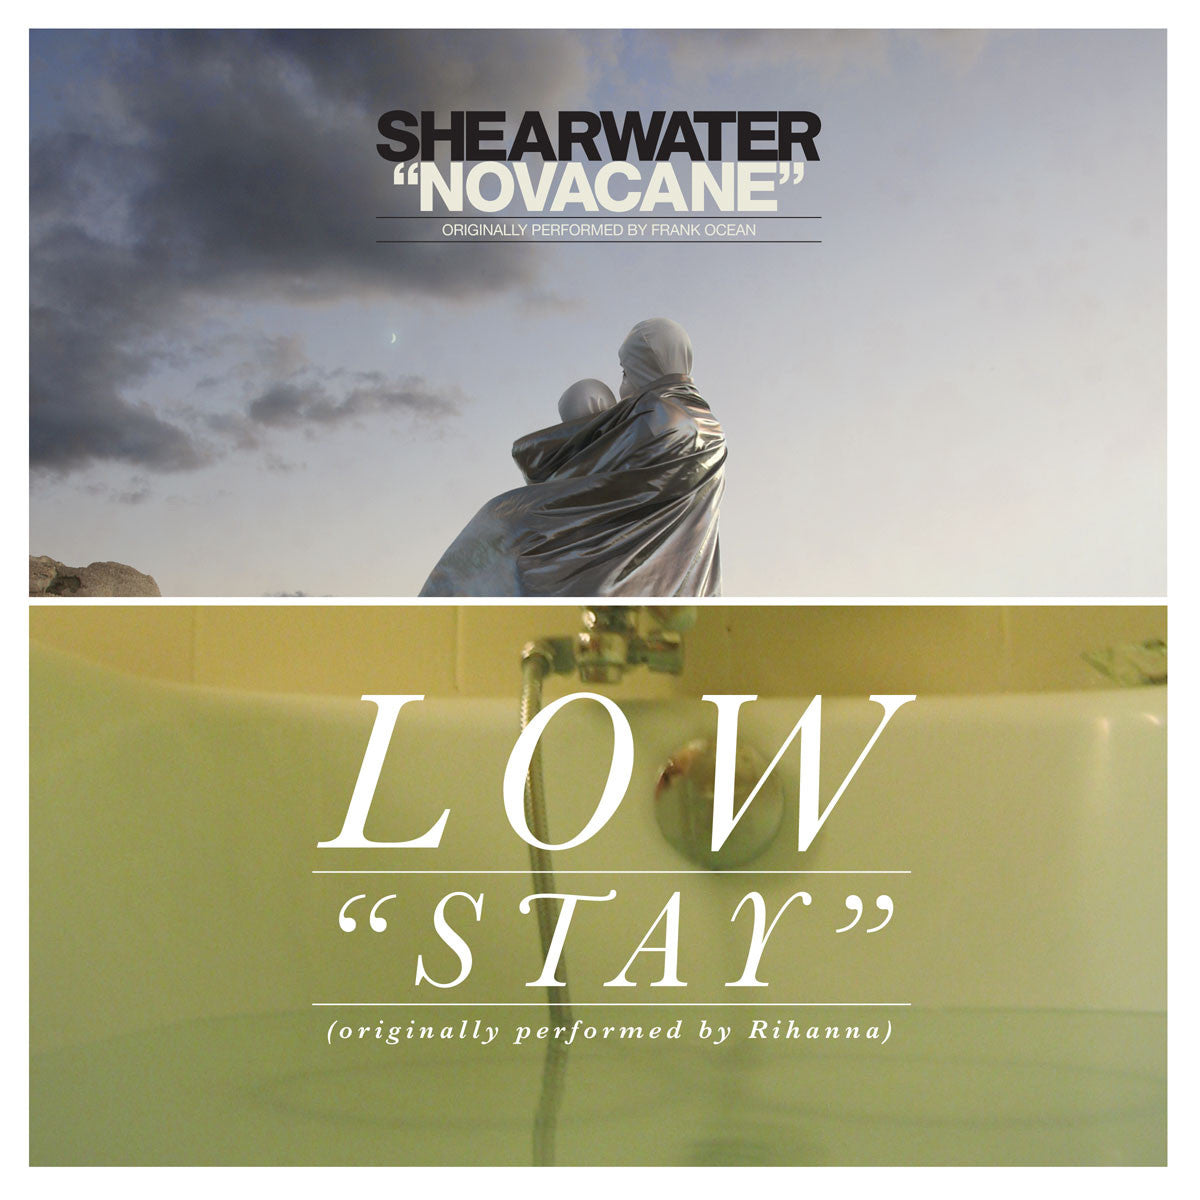 "Low / Shearwater: Stay / Novacane 7"" (Record Store Day)Low / Shearwater: Stay / Novacane 7"" (Record Store Day) rsd"